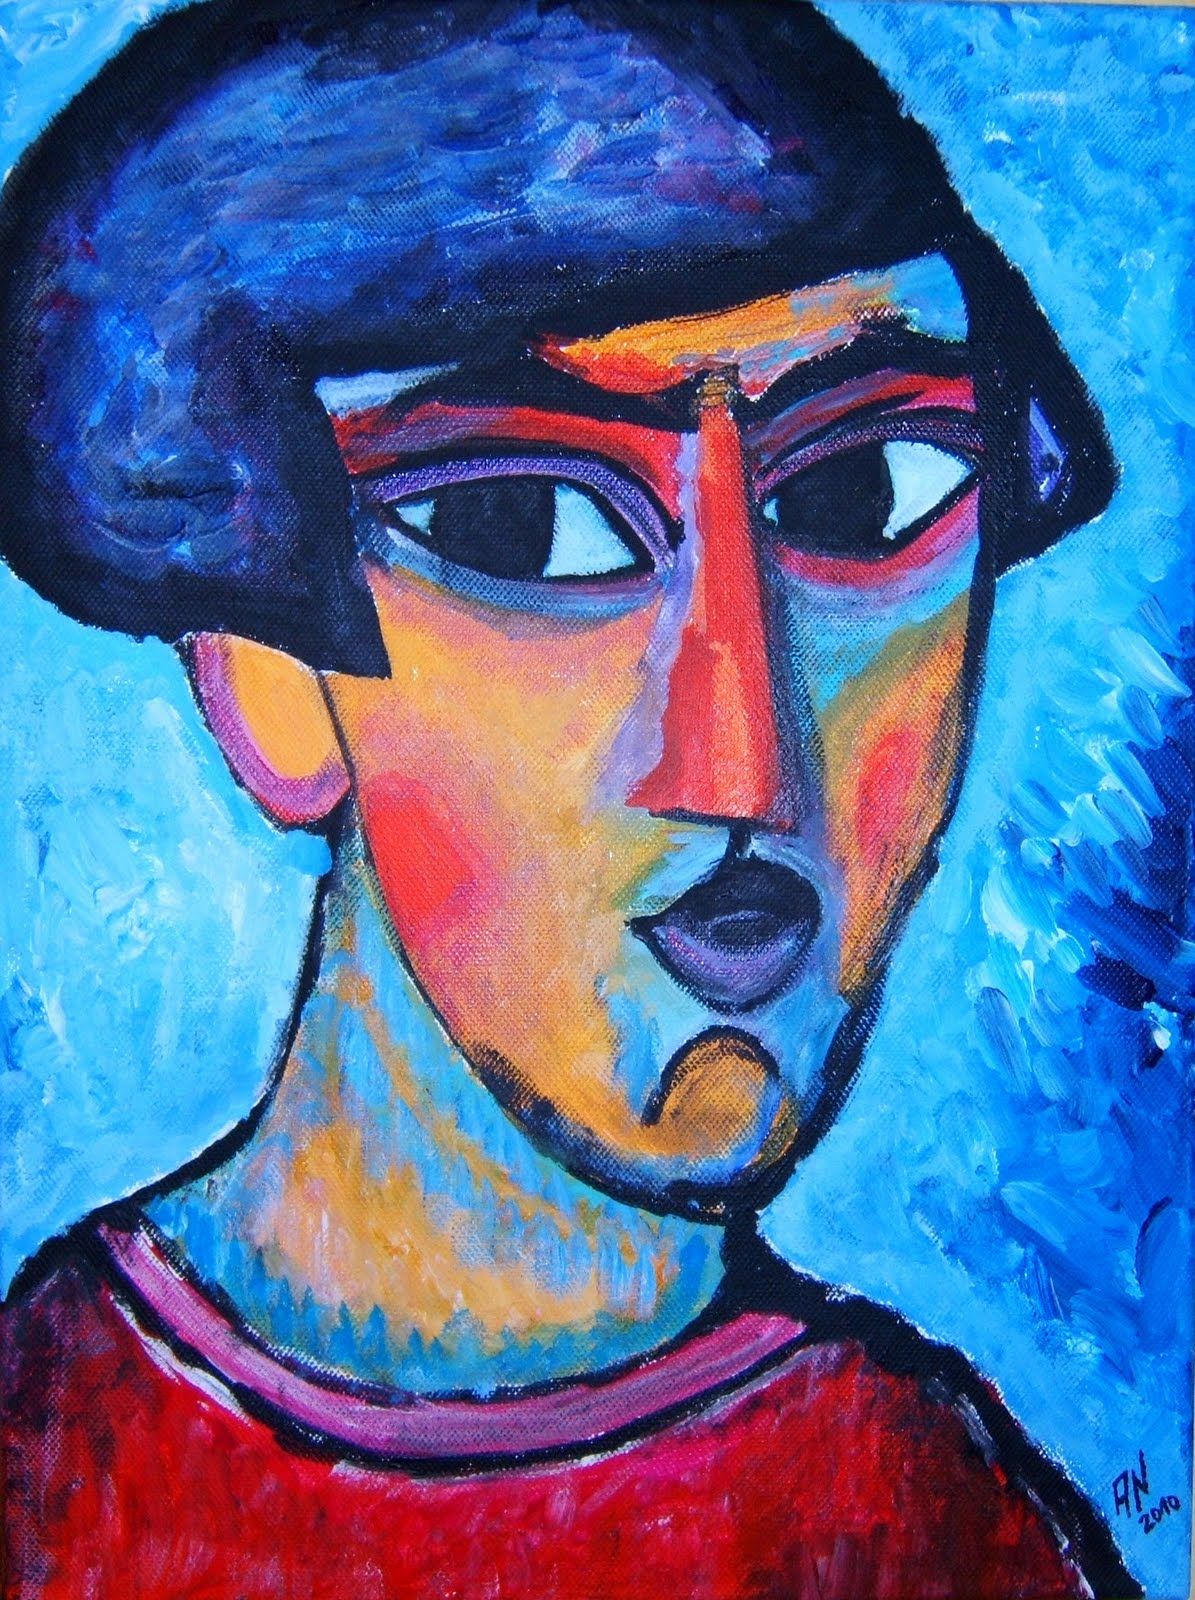 Leinwand 30x40 Expressionen 2010 Quotfaces Jawlensky 03 Quot Acryl Auf